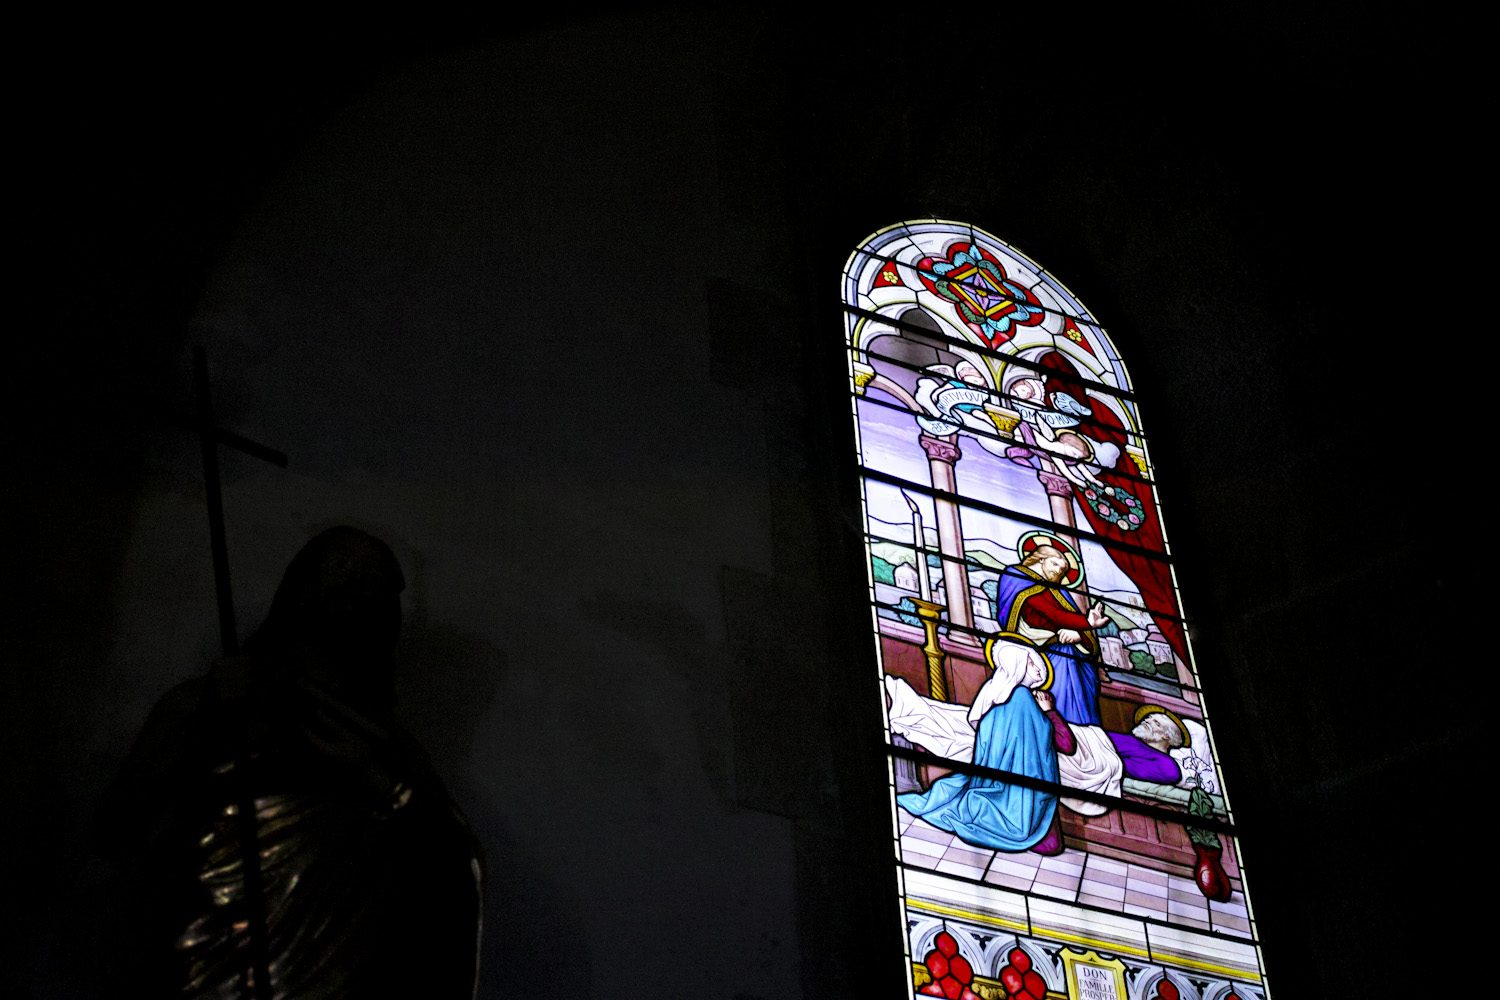 stained_glass_windows_cantal_france_finland_thevoyageur007